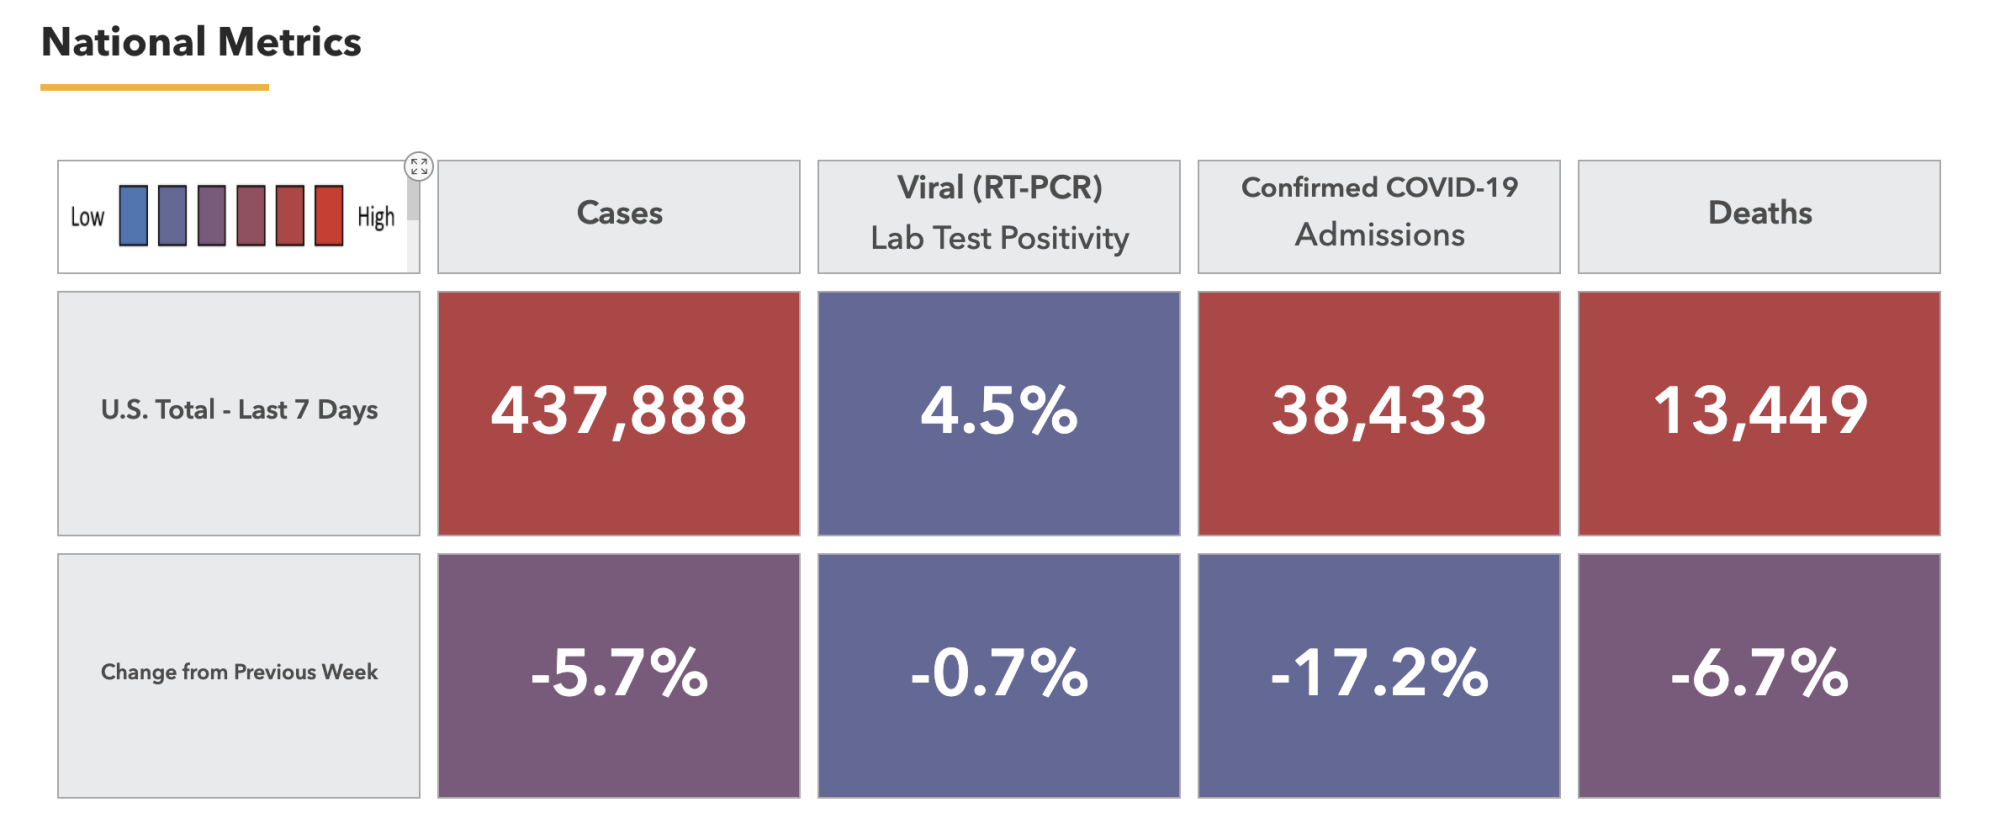 HHS Protect topline metrics, presented as a color-coded table and including cases, test positivity, confirmed COVID-19 hospital admissions, and deaths, along with a